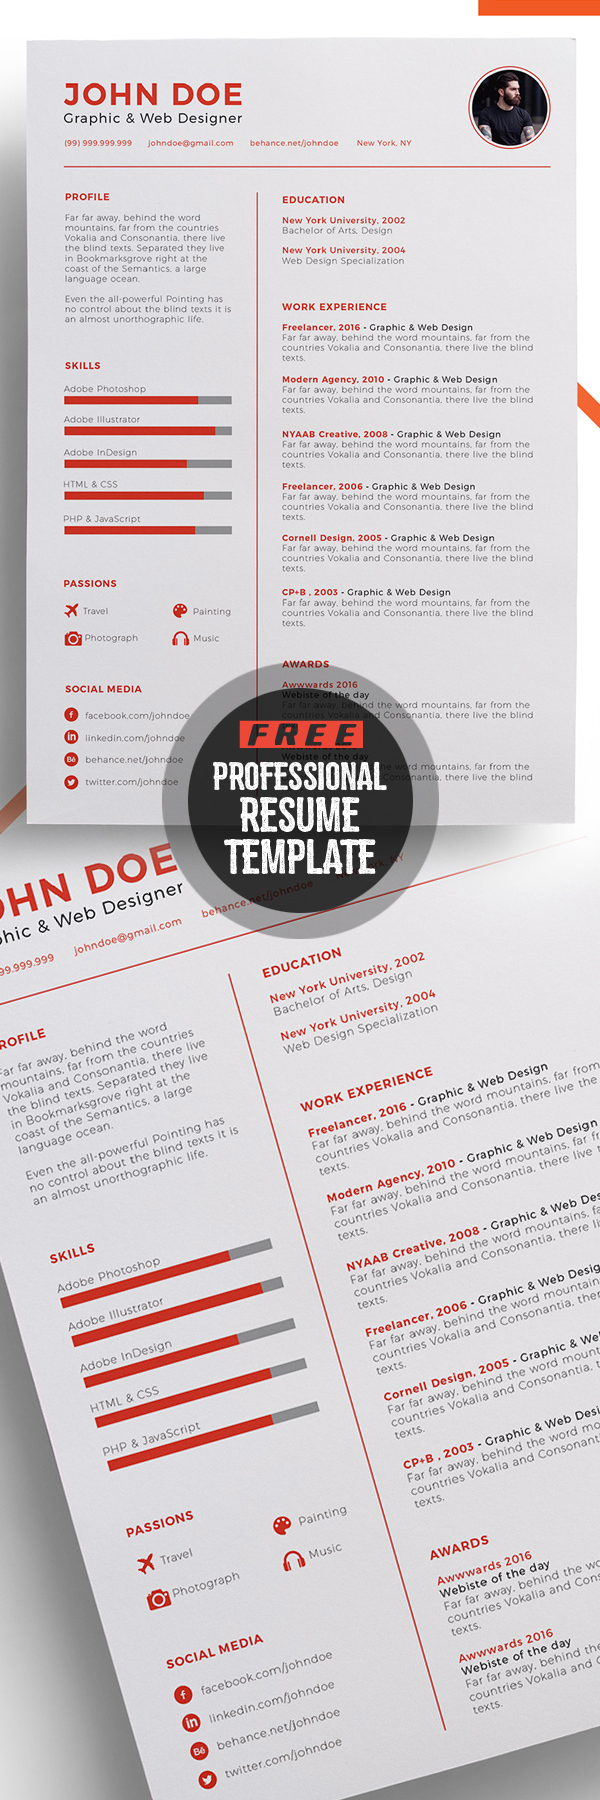 professional free resume template design - Free Word Resume Template